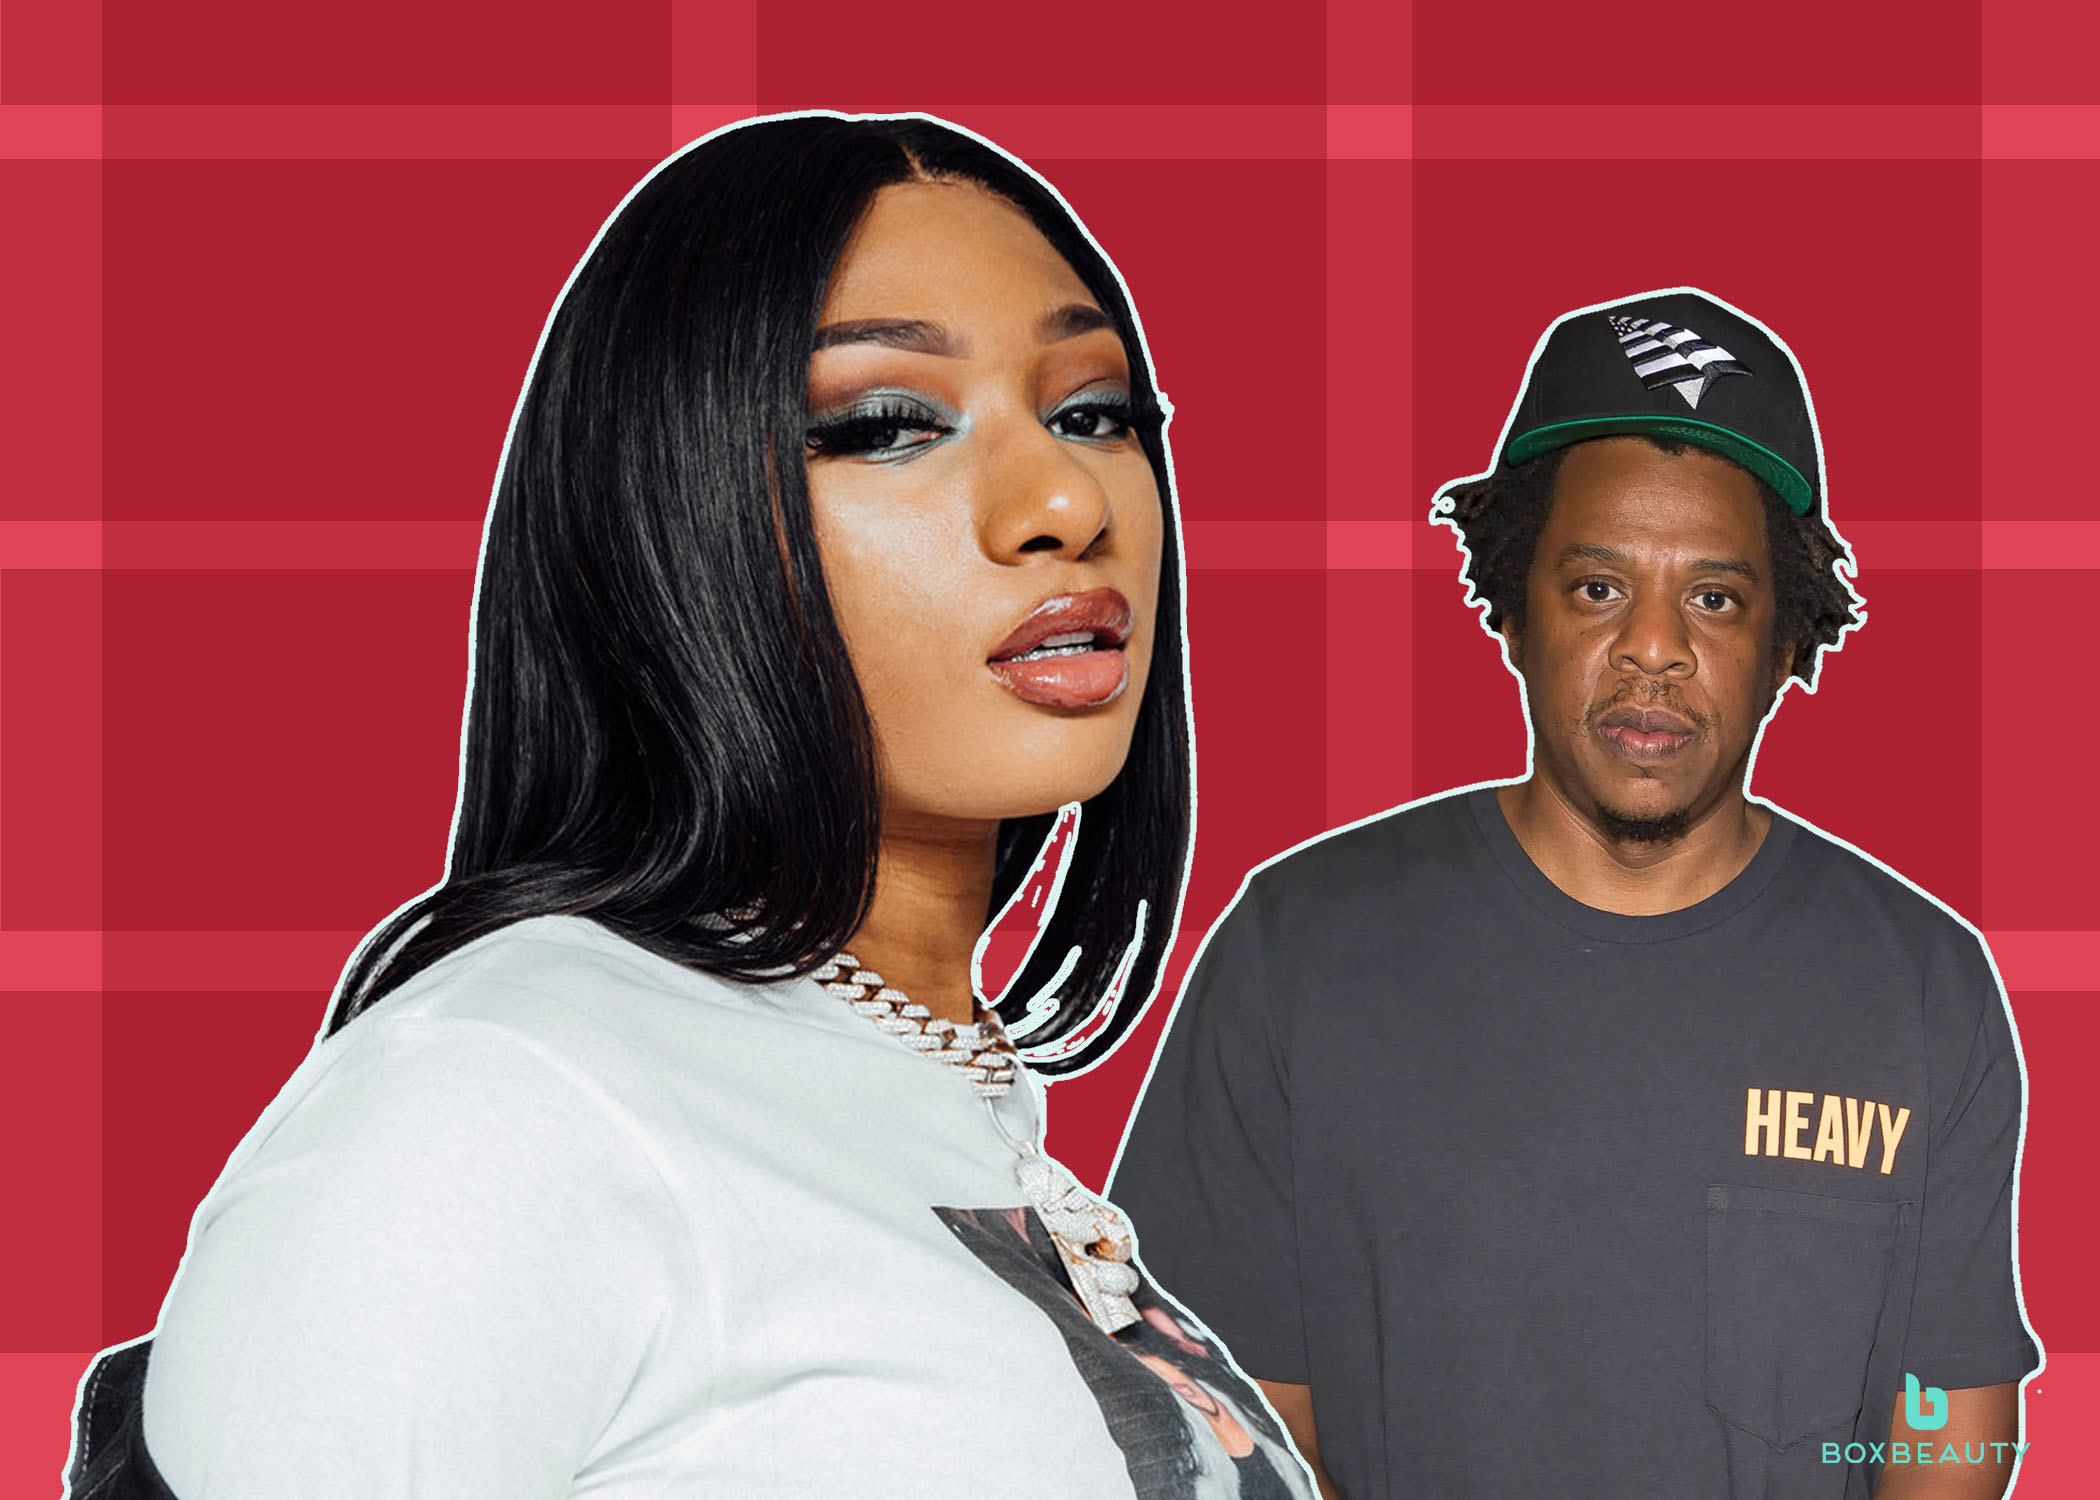 Megan Thee Stallion is Officially a Part of Roc Nation